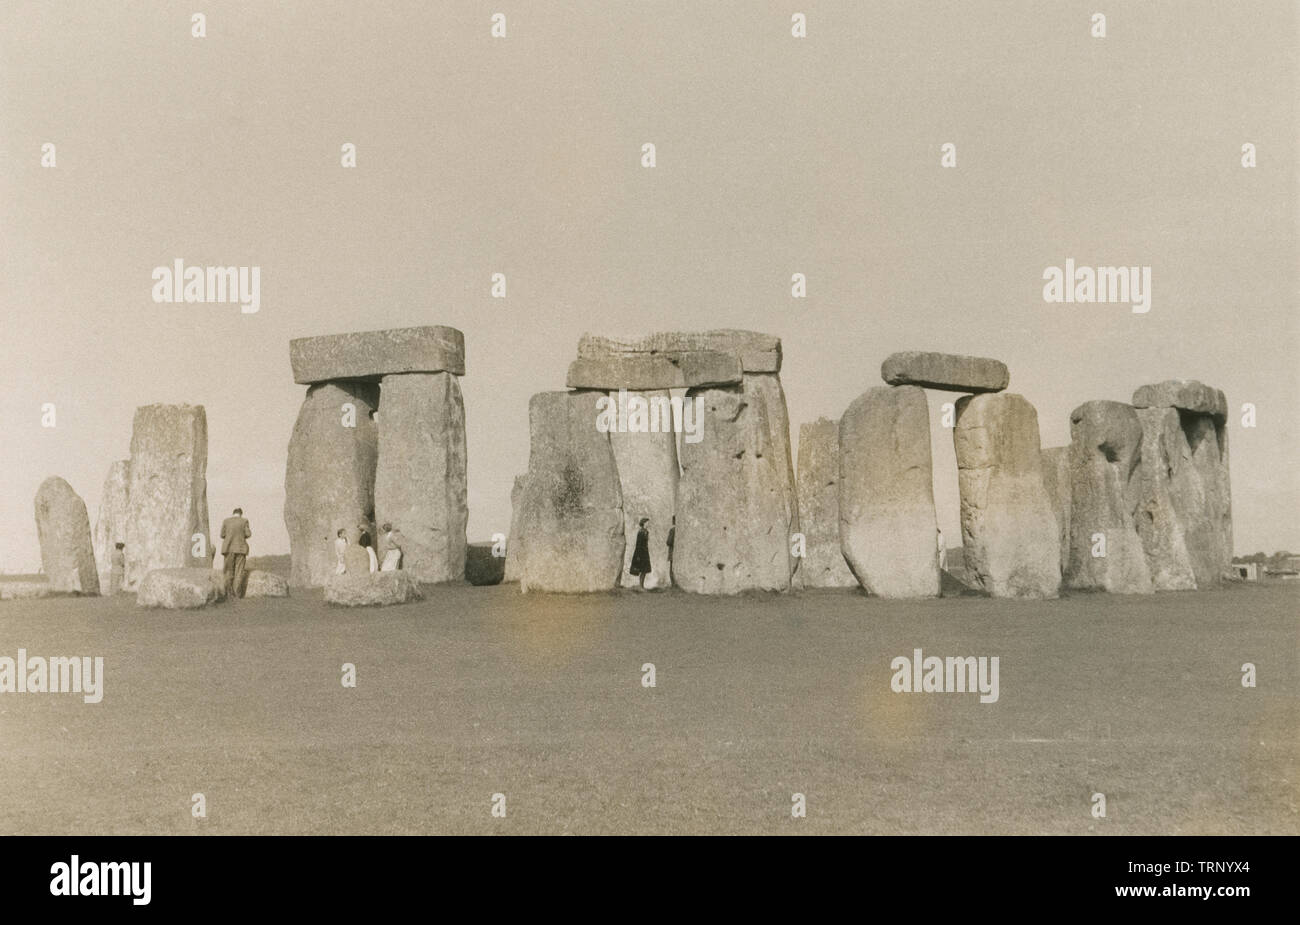 Antique c1950 photograph, tourists at Stonehenge in Wiltshire, England. Stonehenge is a prehistoric monument. It consists of a ring of standing stones set within earthworks in the middle of the most dense complex of Neolithic and Bronze Age monuments in England. SOURCE: ORIGINAL. PHOTOGRAPH - Stock Image